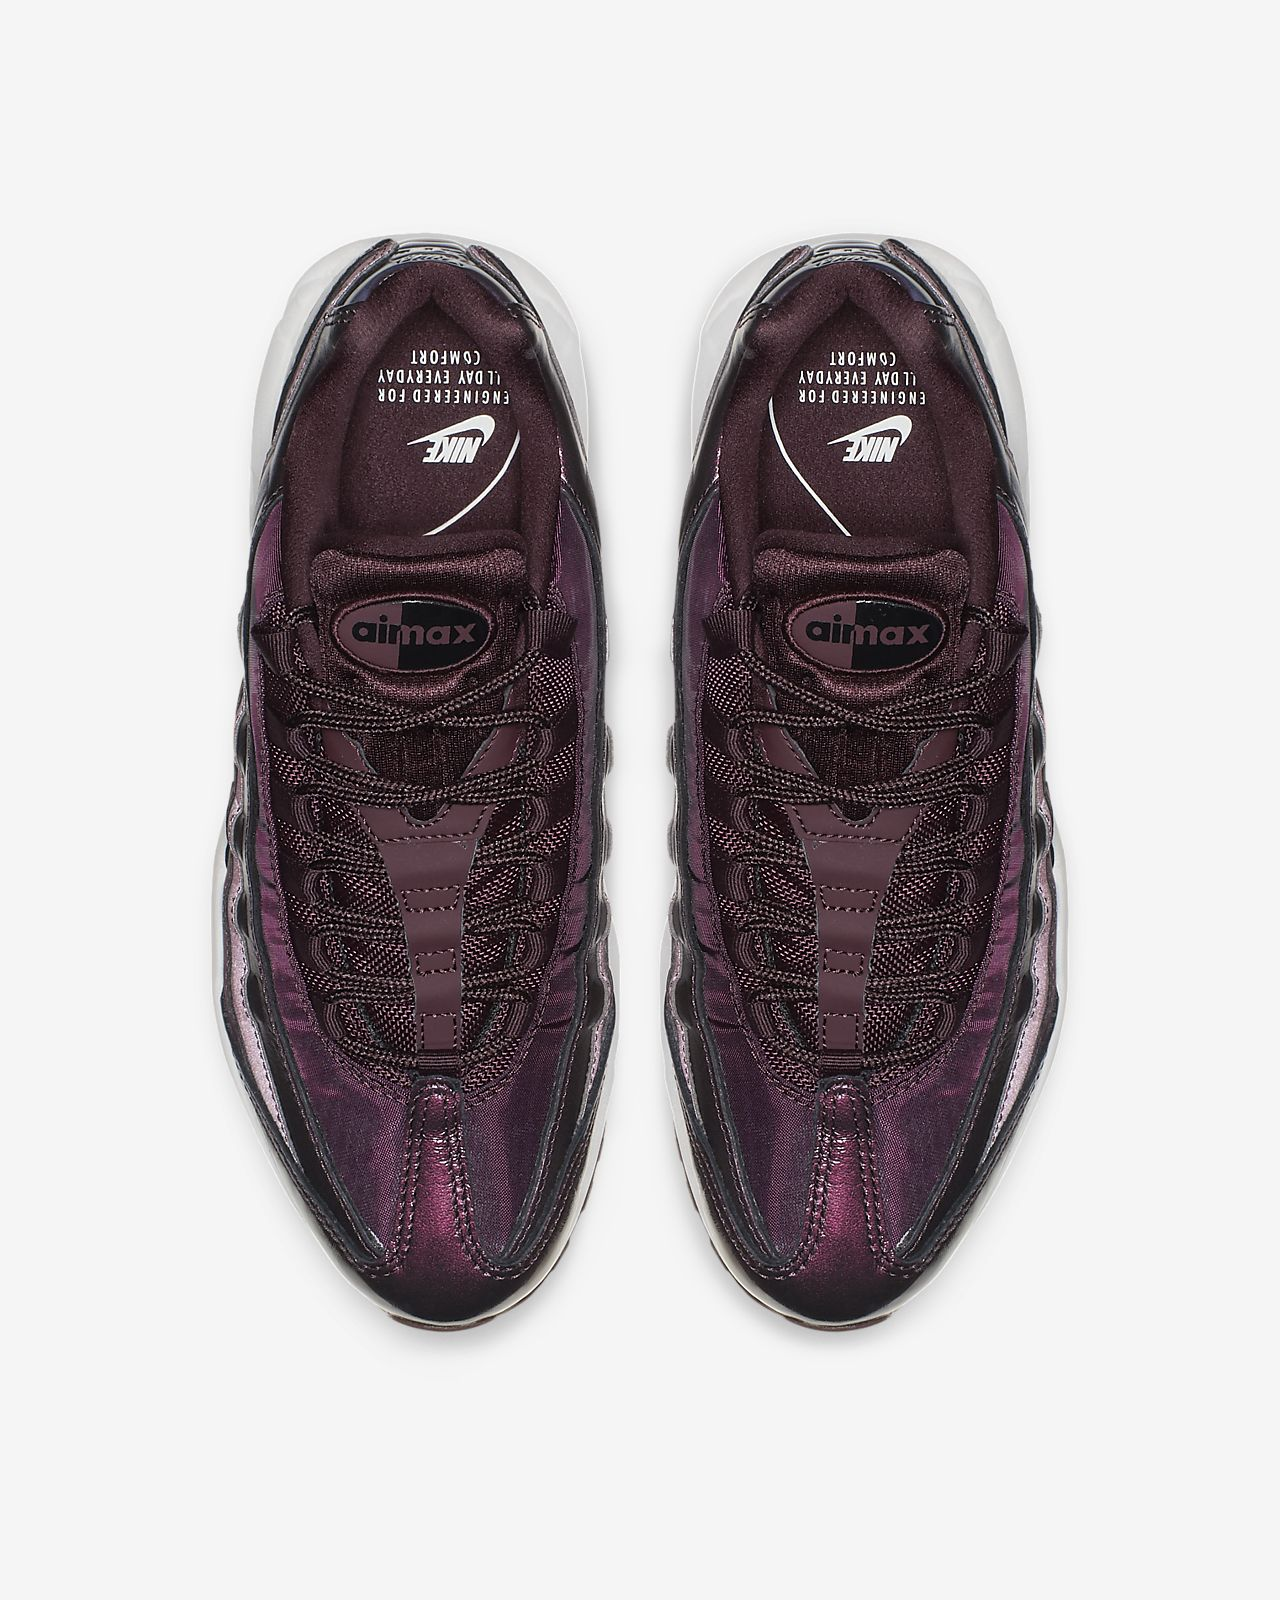 Low Resolution Nike Air Max 95 Lux Women s Shoe Nike Air Max 95 Lux Women s  Shoe 8fba83aaa